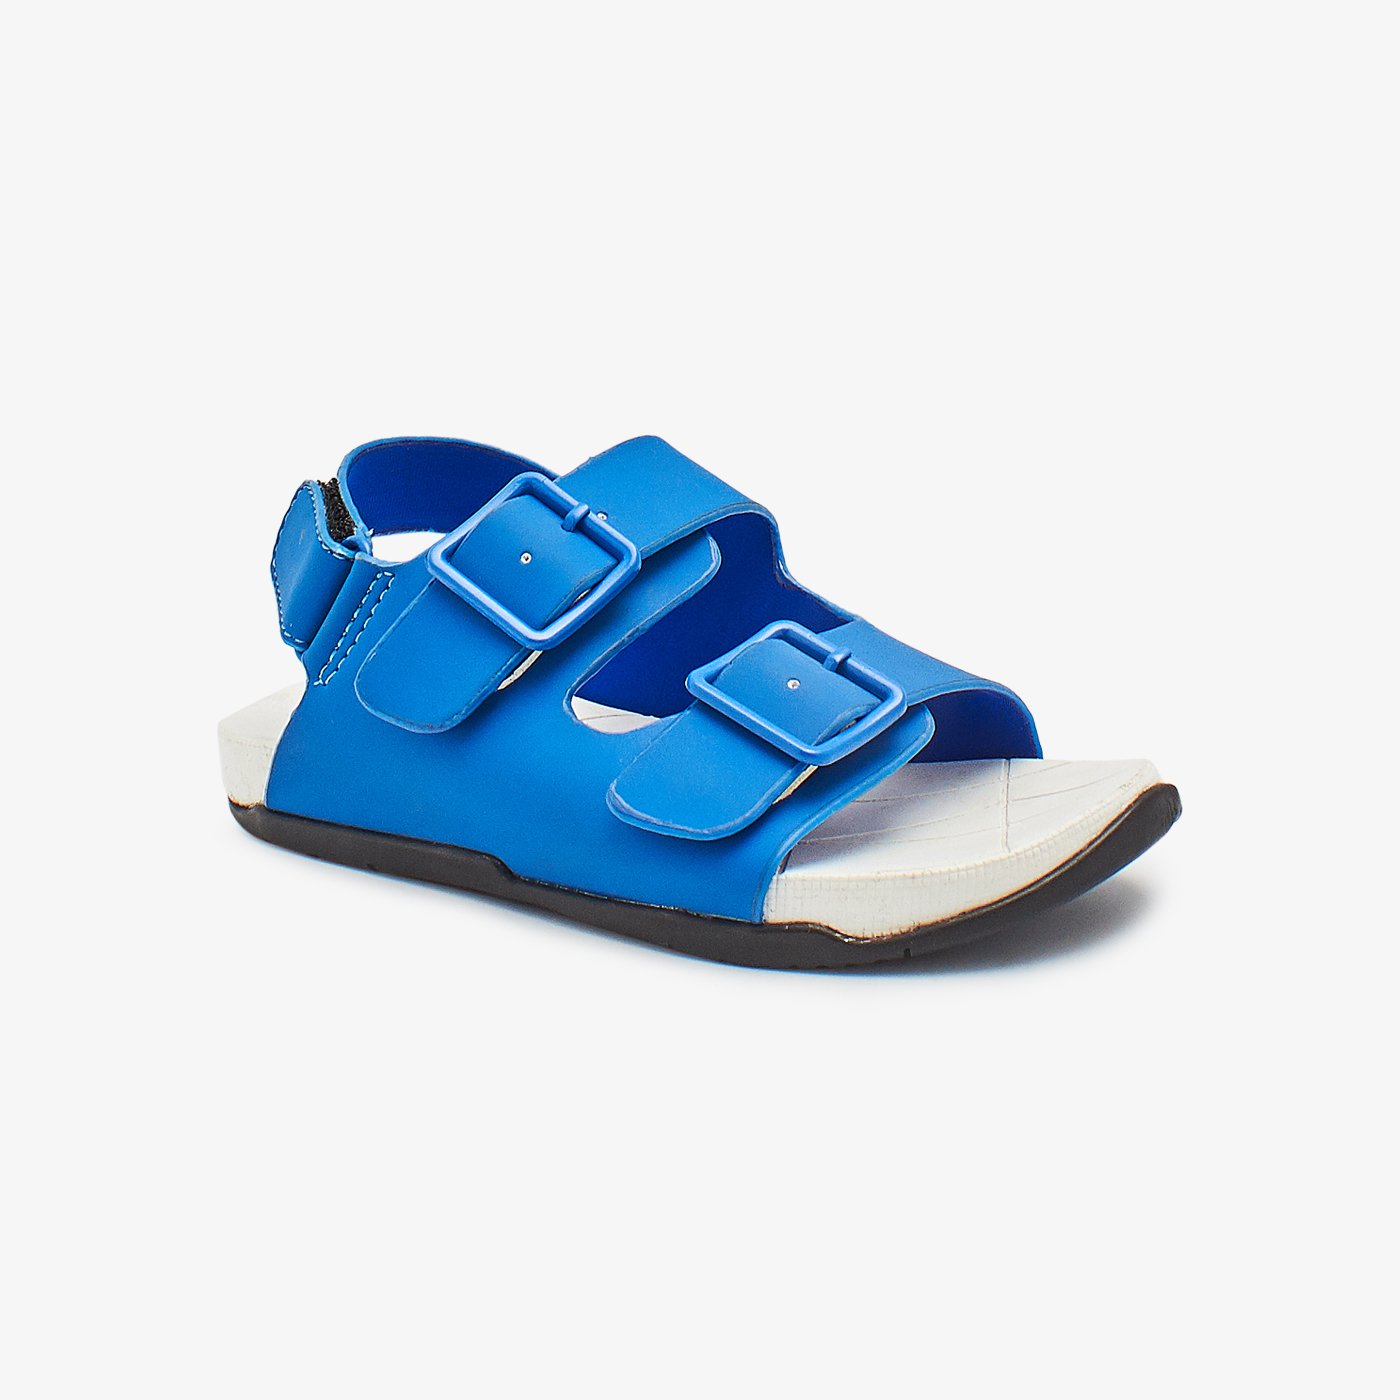 Buckled Boys Sandals